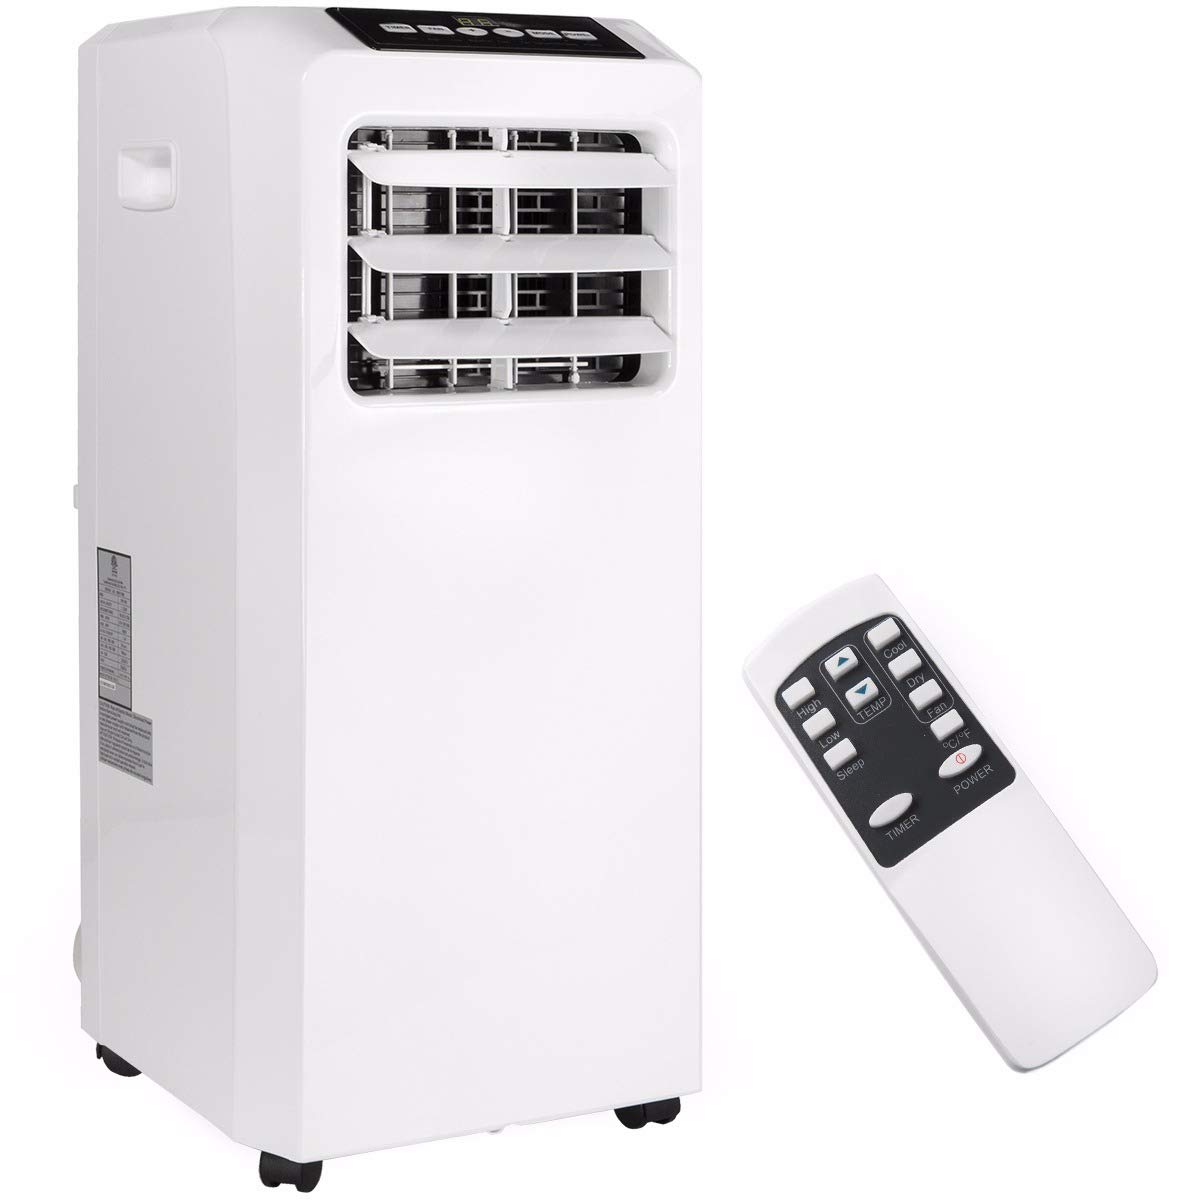 Ensue 8,000 BTU 4in1 Portable Air Conditioner Dehumidifier Fan A/C Cooling for Rooms up to 250 Sq. ft with Remote Control Kit